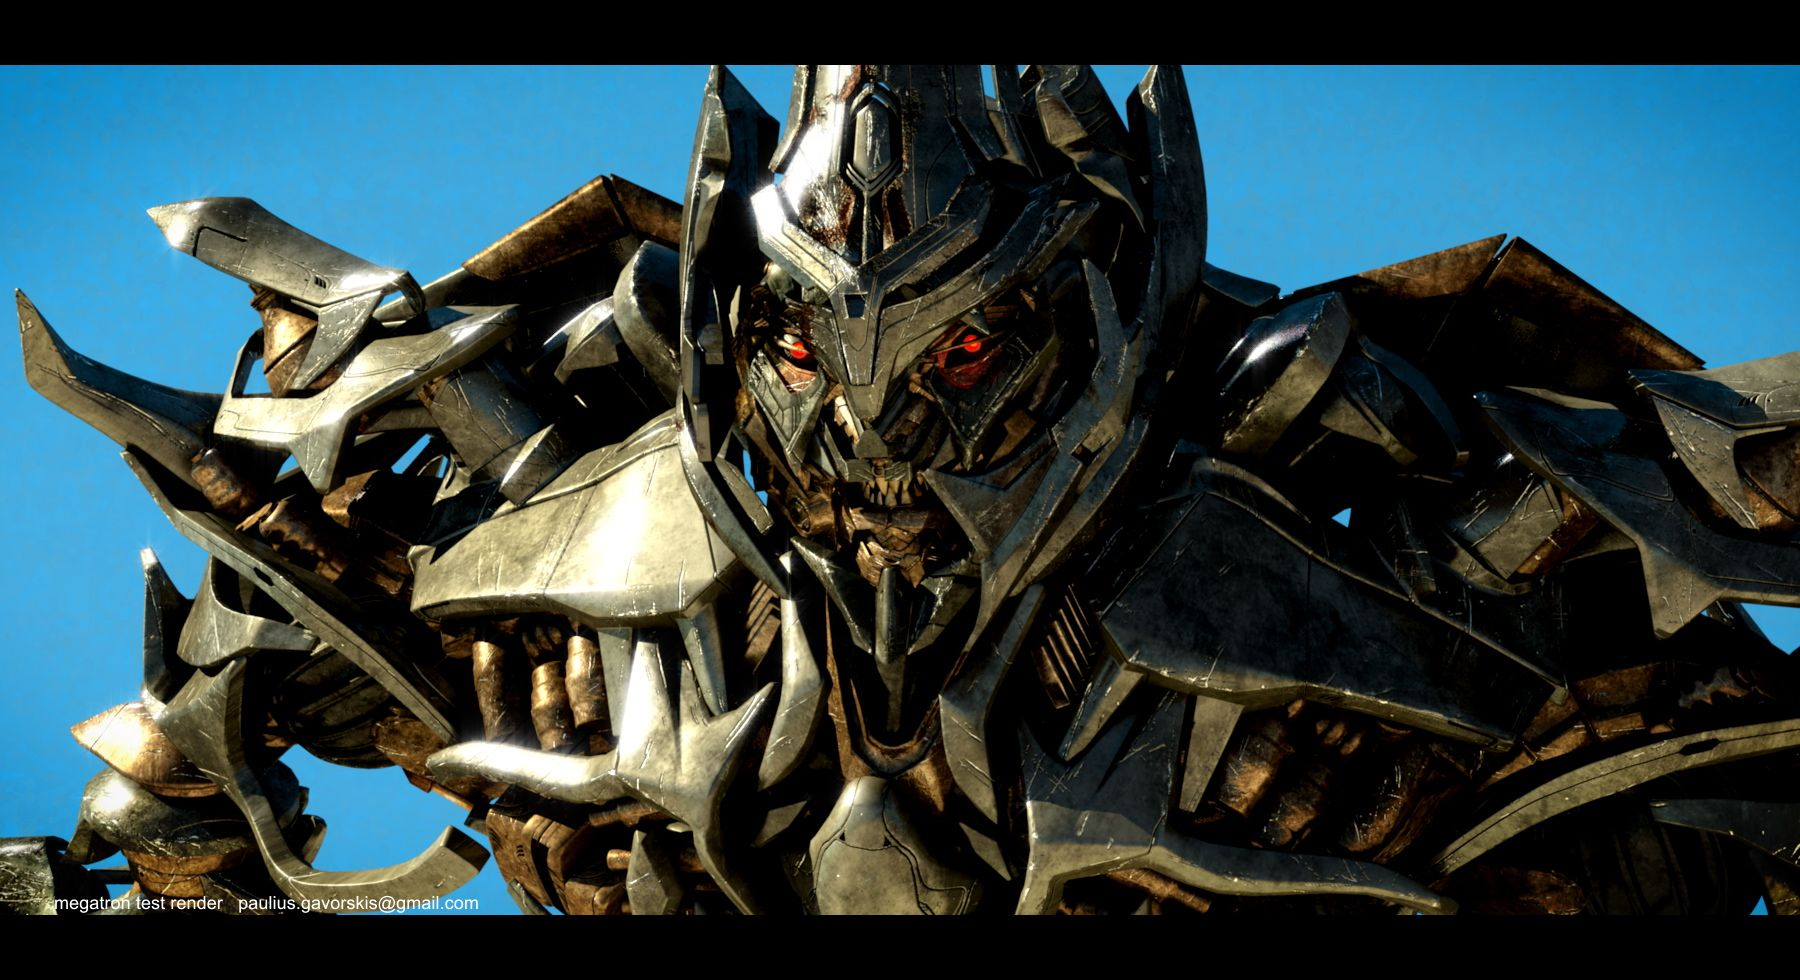 transformers 3 movie part 1 full movie - how many games in mlb